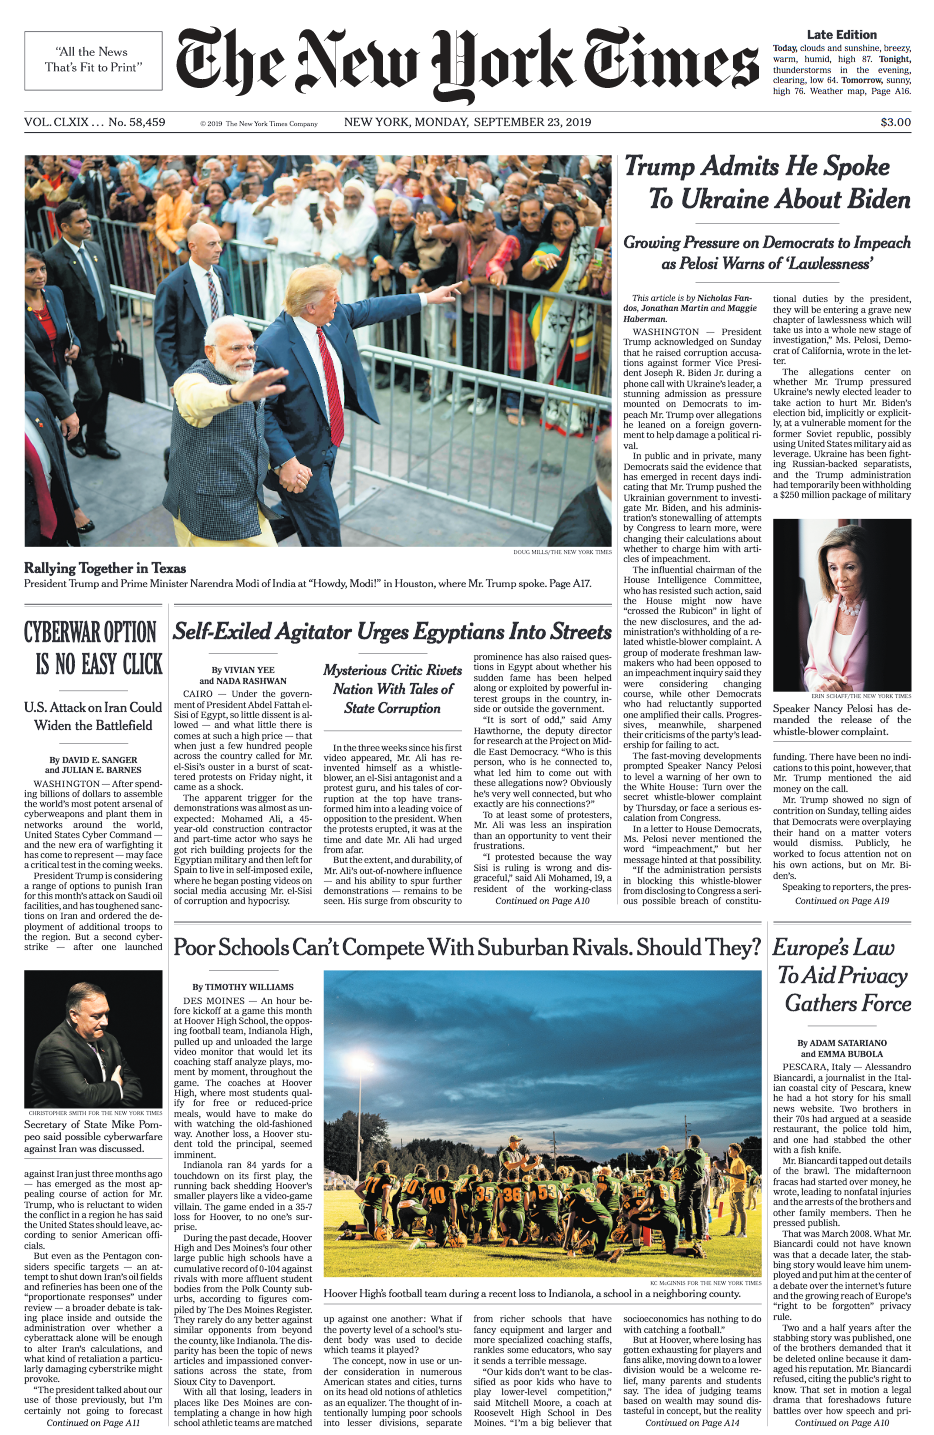 NYT_FrontPage_092319.png